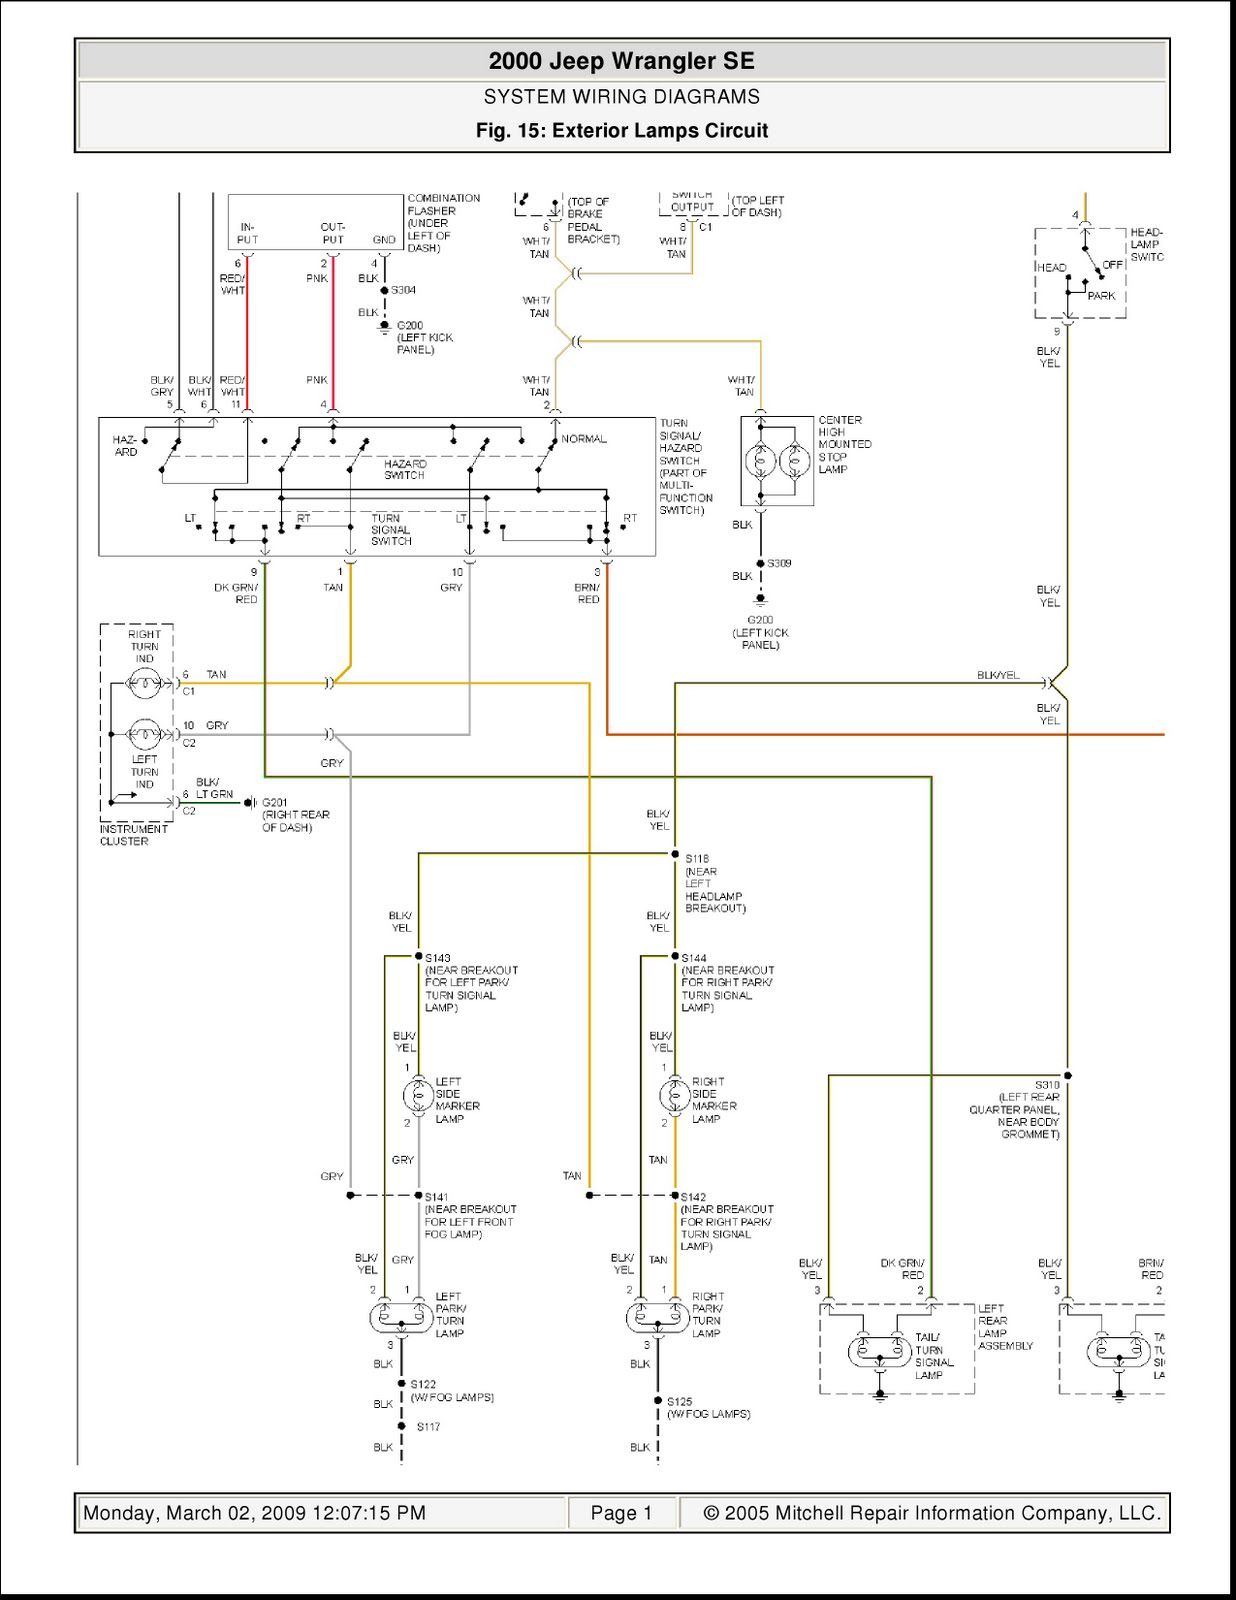 hight resolution of 2000 jeep wrangler se system wiring diagrams exterior 2004 jeep wrangler wiring 2004 jeep wrangler wiring